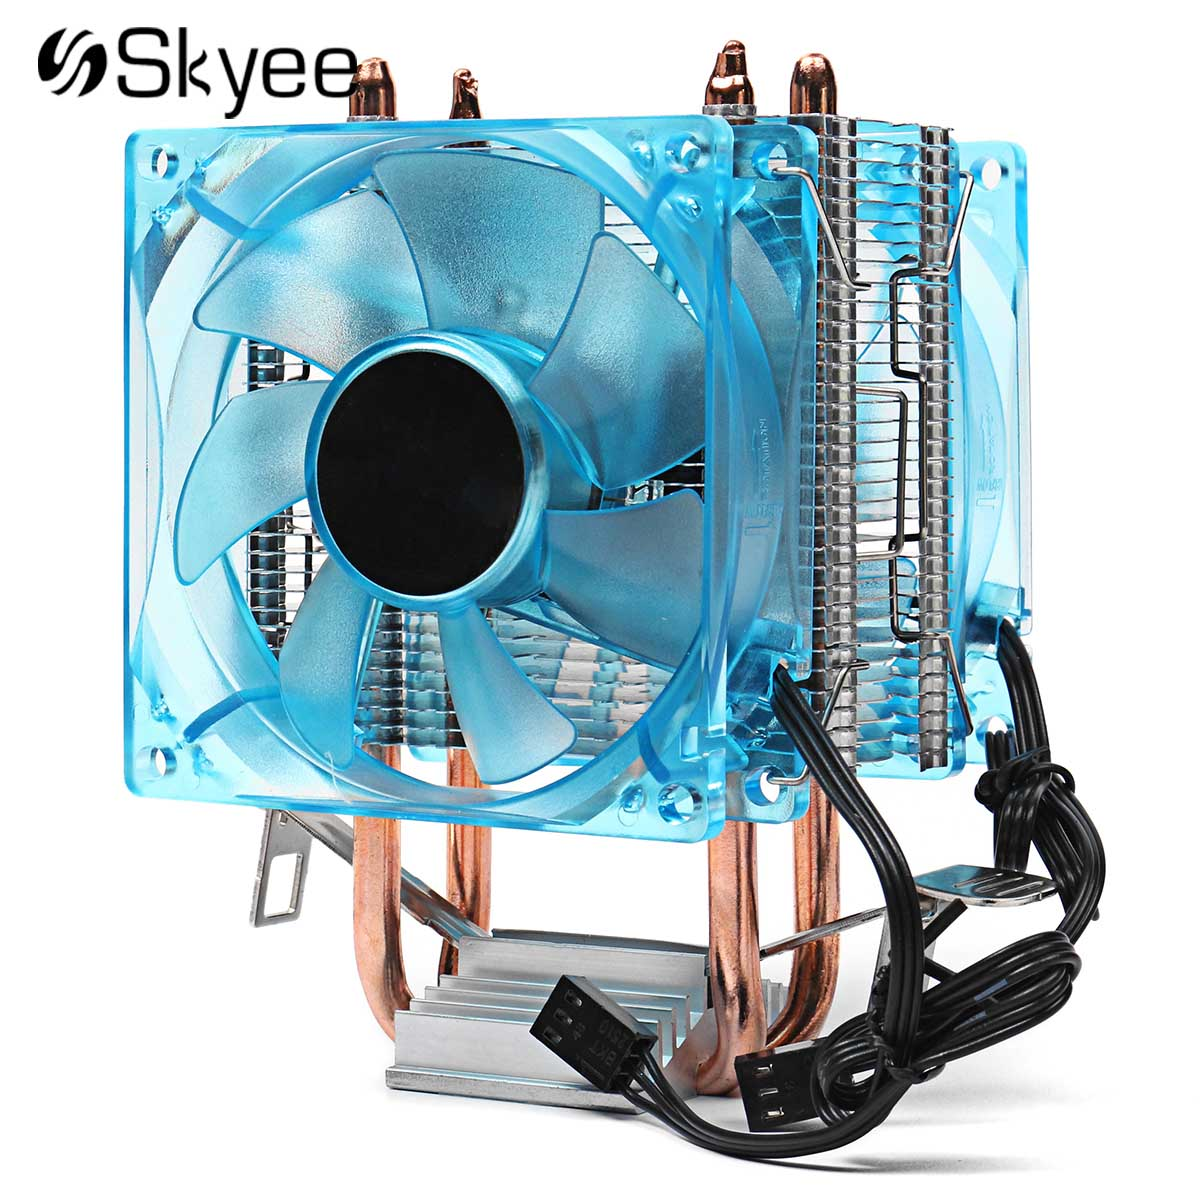 Blue 3pin 90mm Dual Copper Pipe LED CPU Cooling Fan Aluminum Heatsink Cooler Cooling Fan for AMD AM2 + AM3 +Intel 775 1155 1156 pcooler s90f 10cm 4 pin pwm cooling fan 4 copper heat pipes led cpu cooler cooling fan heat sink for intel lga775 for amd am2